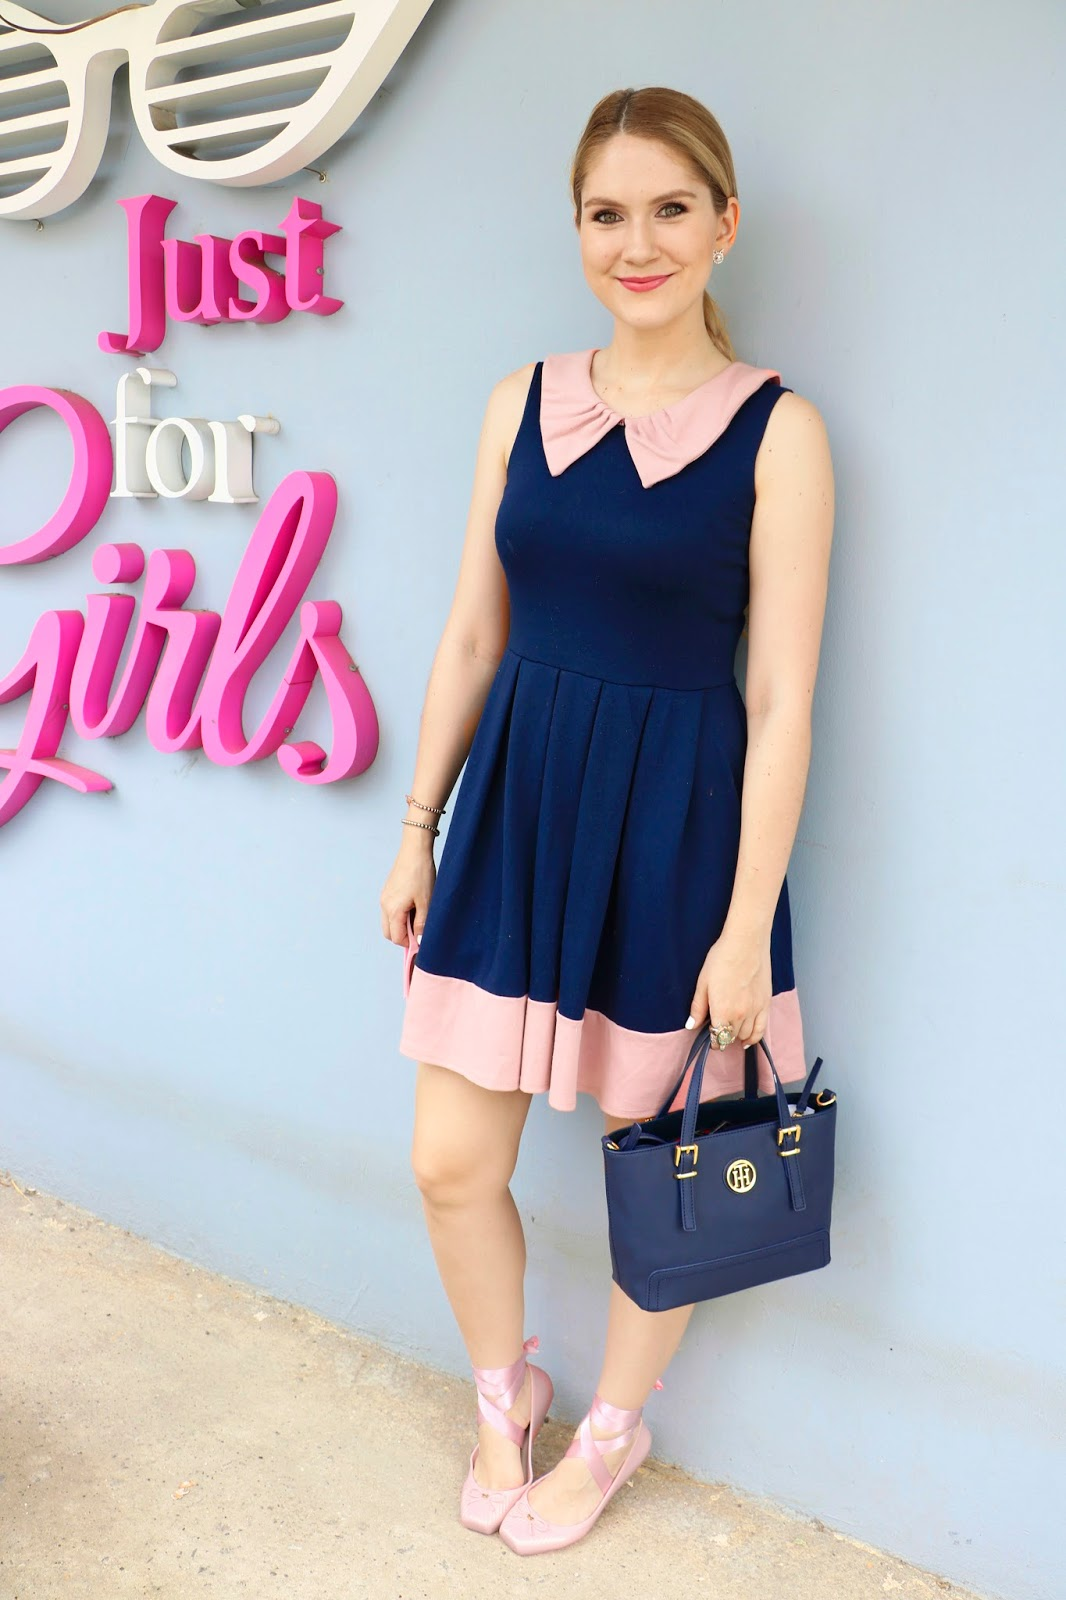 Pretty navy dress and pink ballerinas outfit!